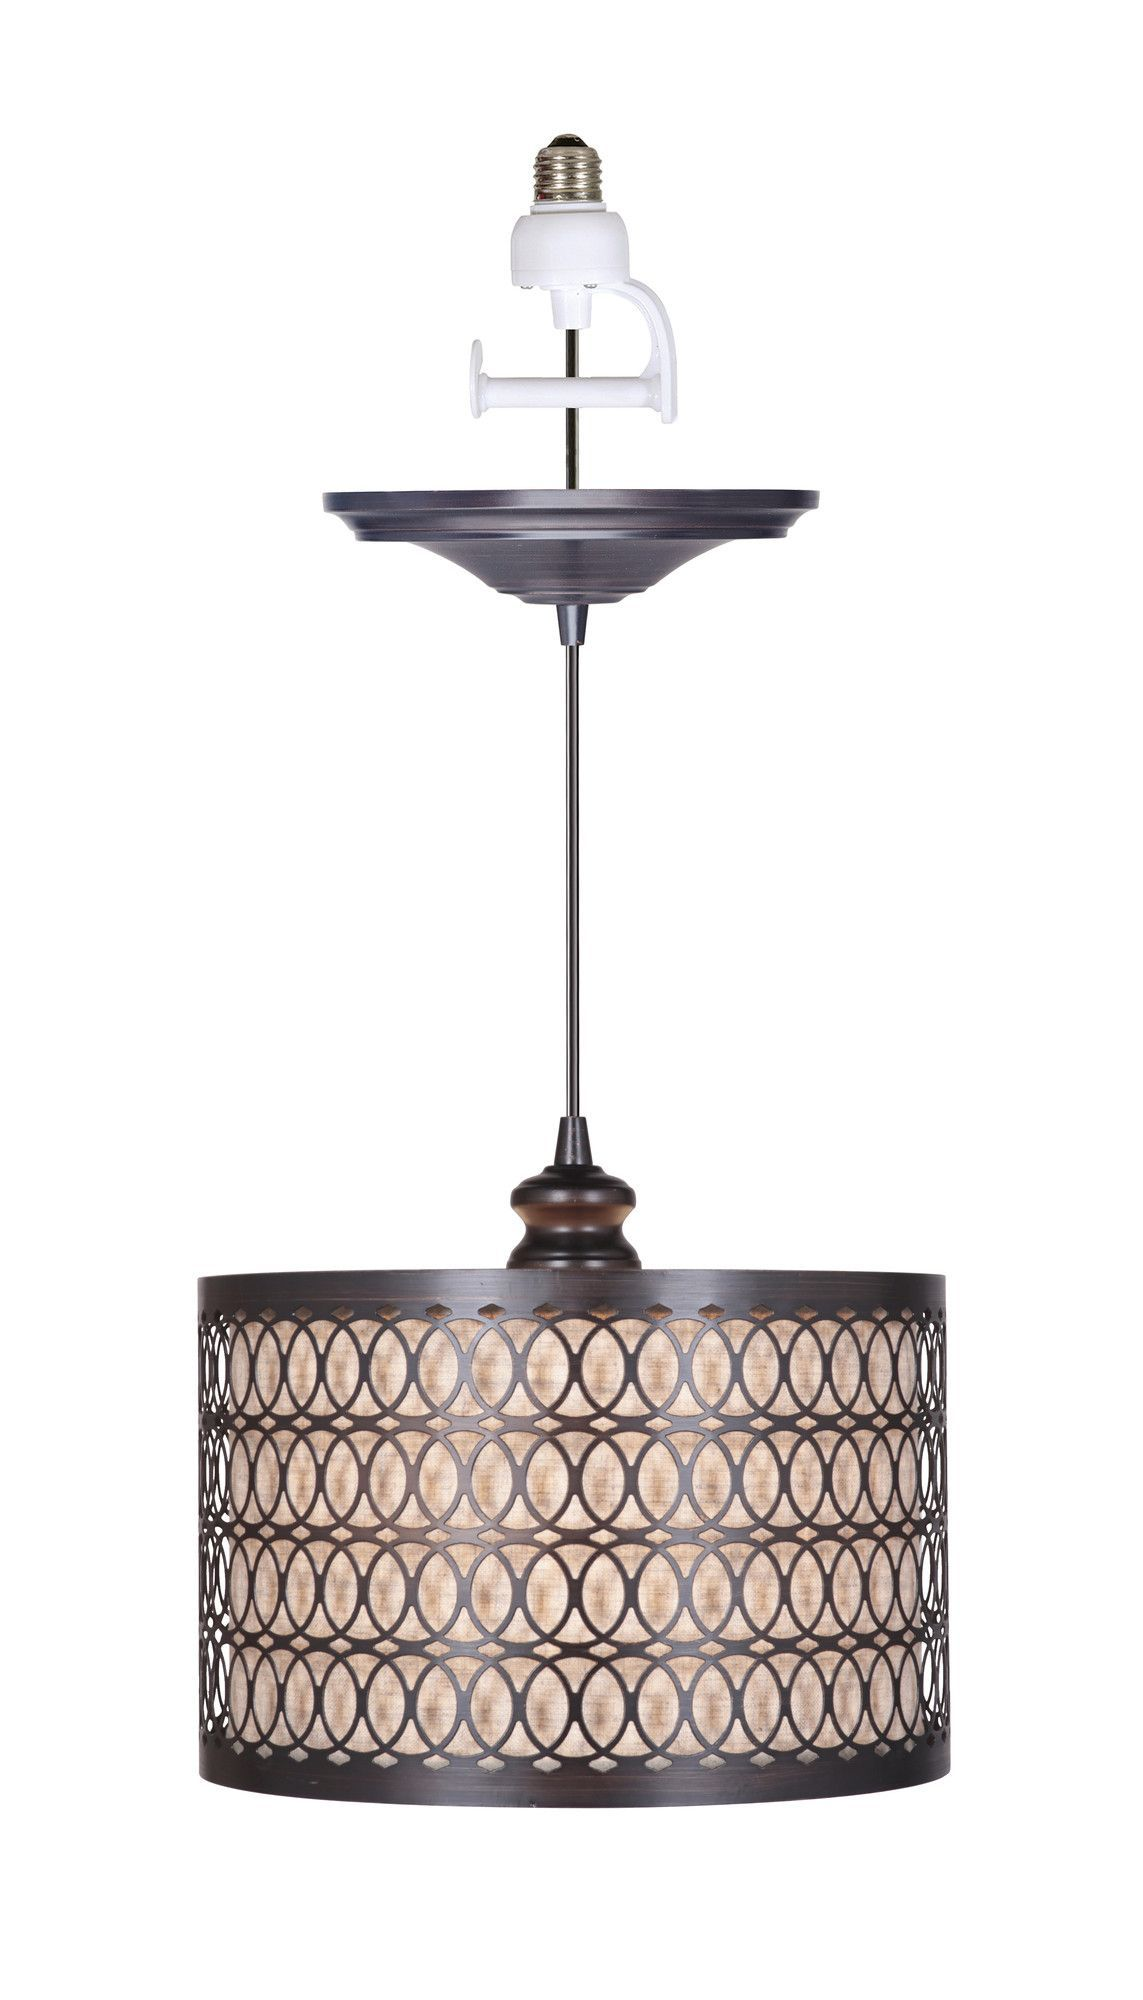 Features Instant Collection Finish Brushed Bronze Shade Material Linen And Metal S Pendant Light Recessed Lighting Fixtures Copper Pendant Lights